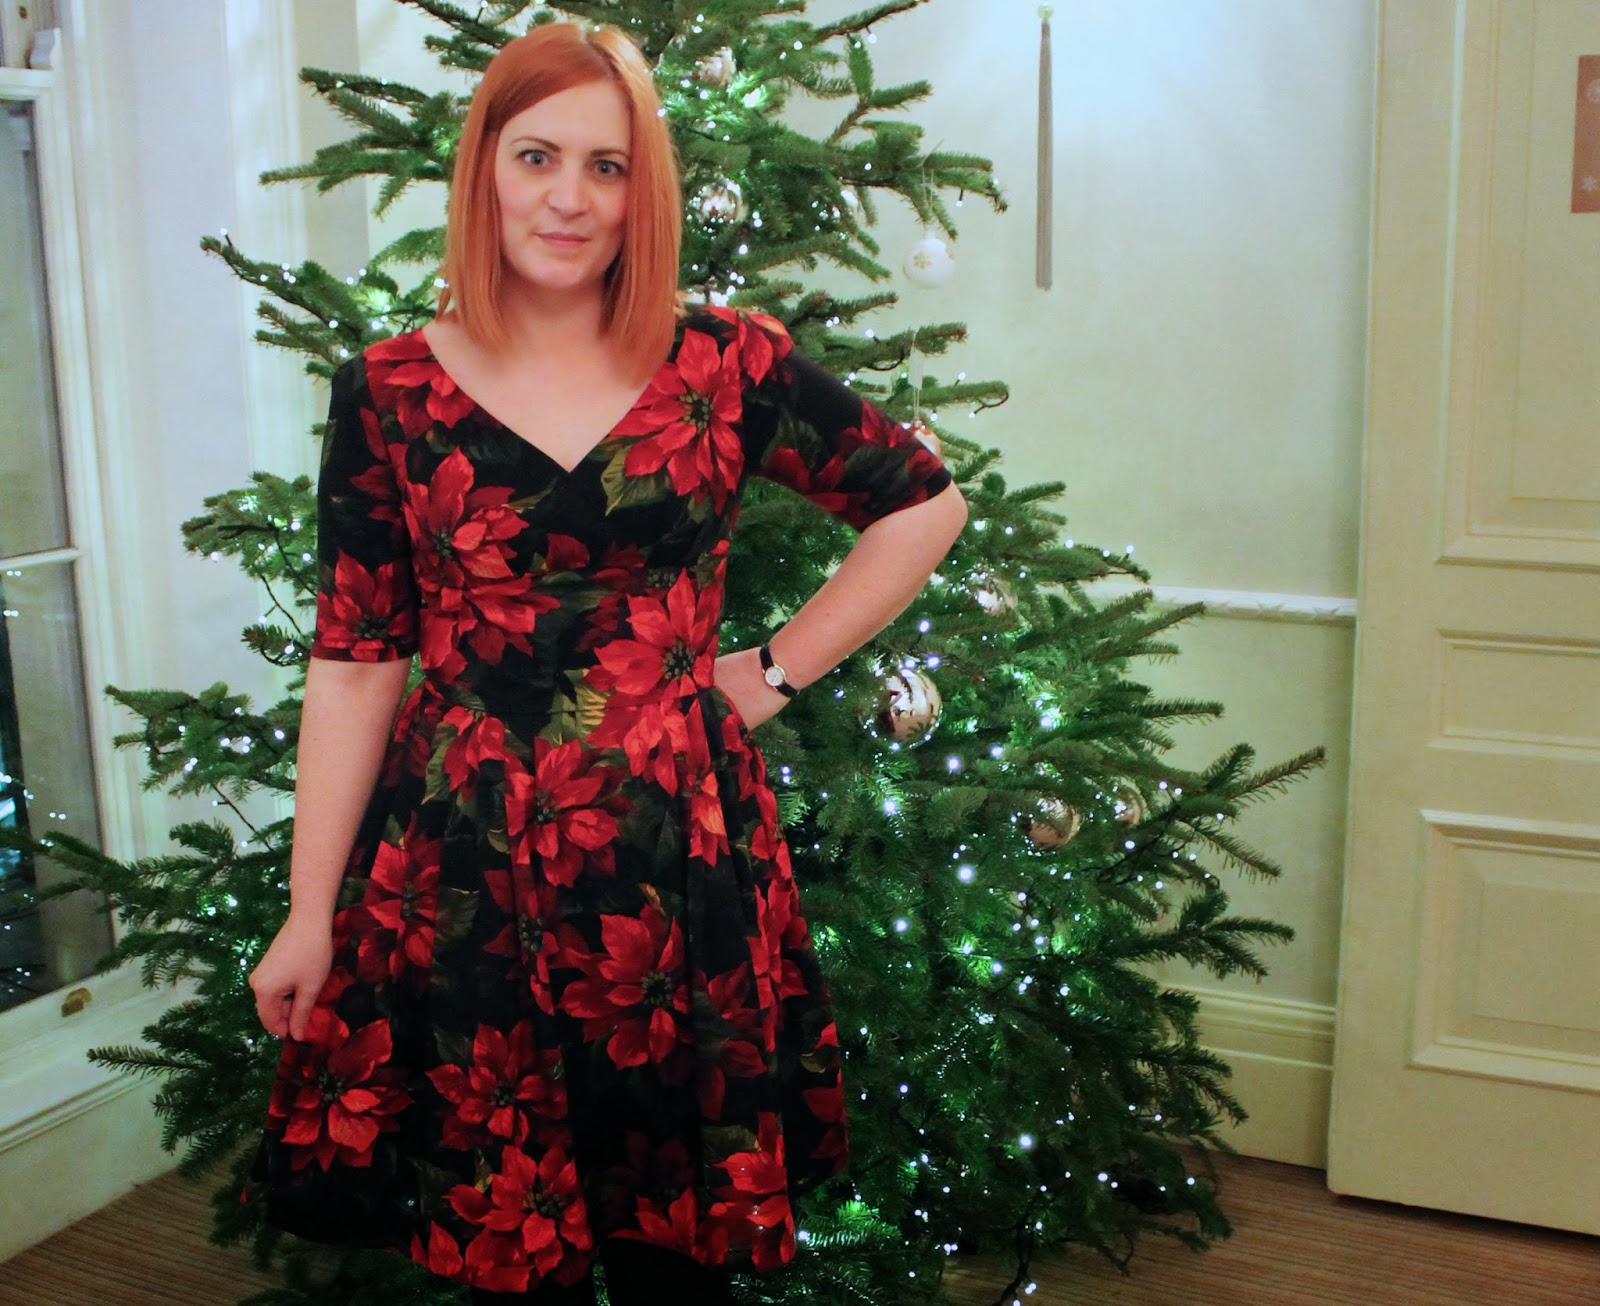 Christmas tree dress up images - This Poinsettia Print Is A More Subtle Nod To Christmas Than The Other Dresses I Have Bought But Still Fabulously Festive